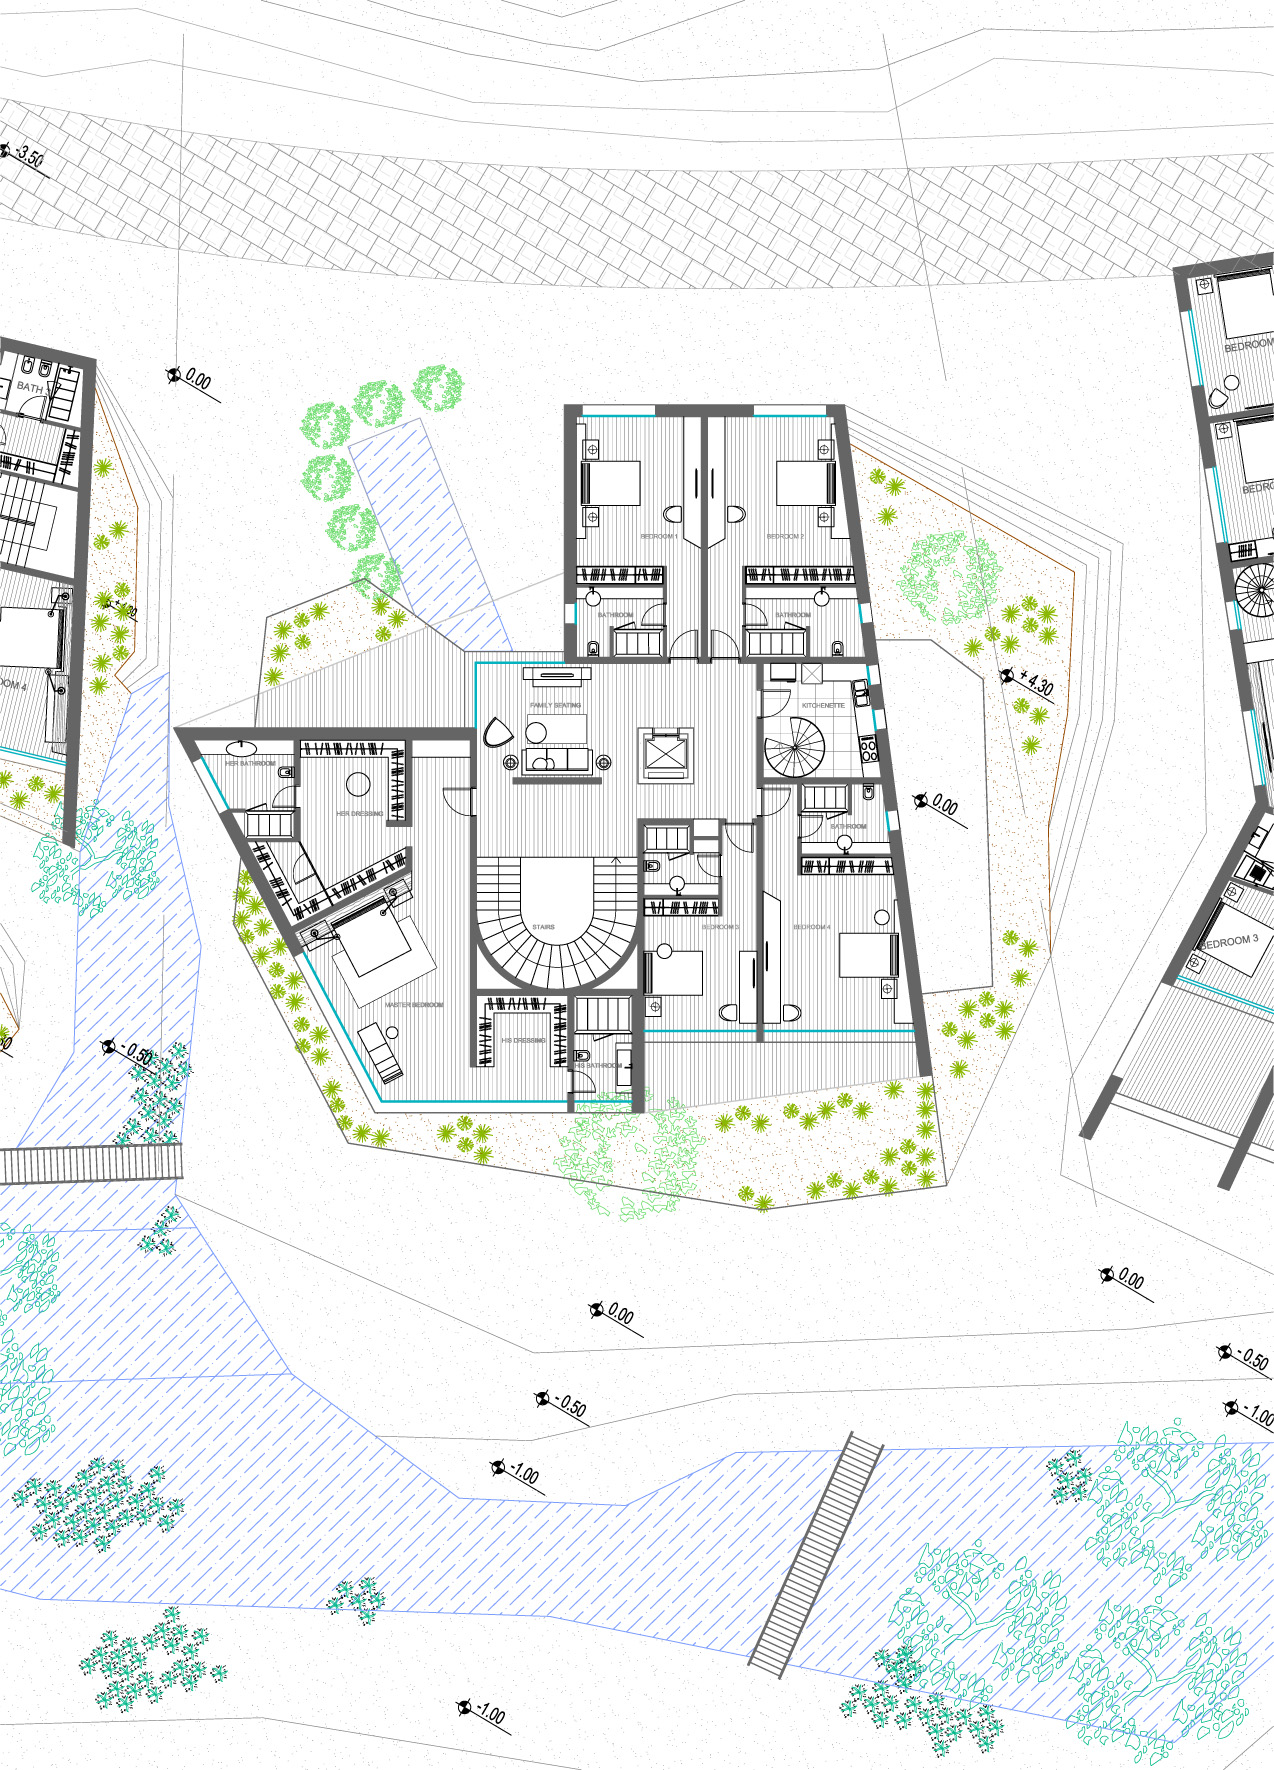 V:\44 KHOBAR competition\Drawings\X-ref\Villa 2 Majed - CANYON h